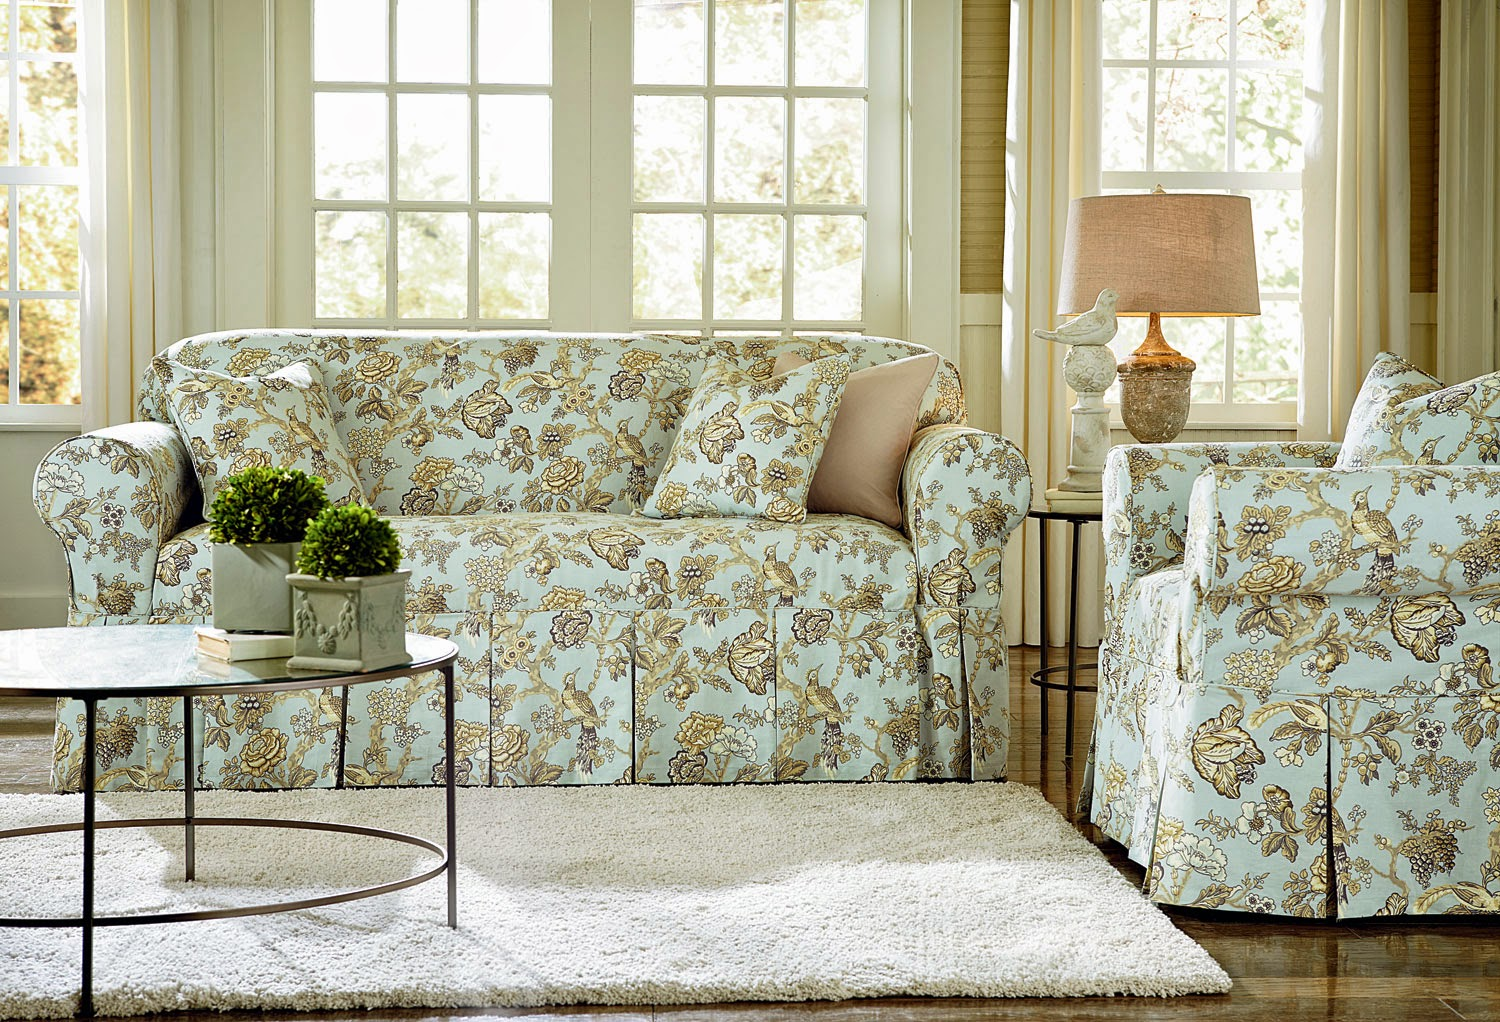 dining room chair slipcovers floral design | Sure Fit Slipcovers: Wallpaper and Slipcovers, Back in the ...